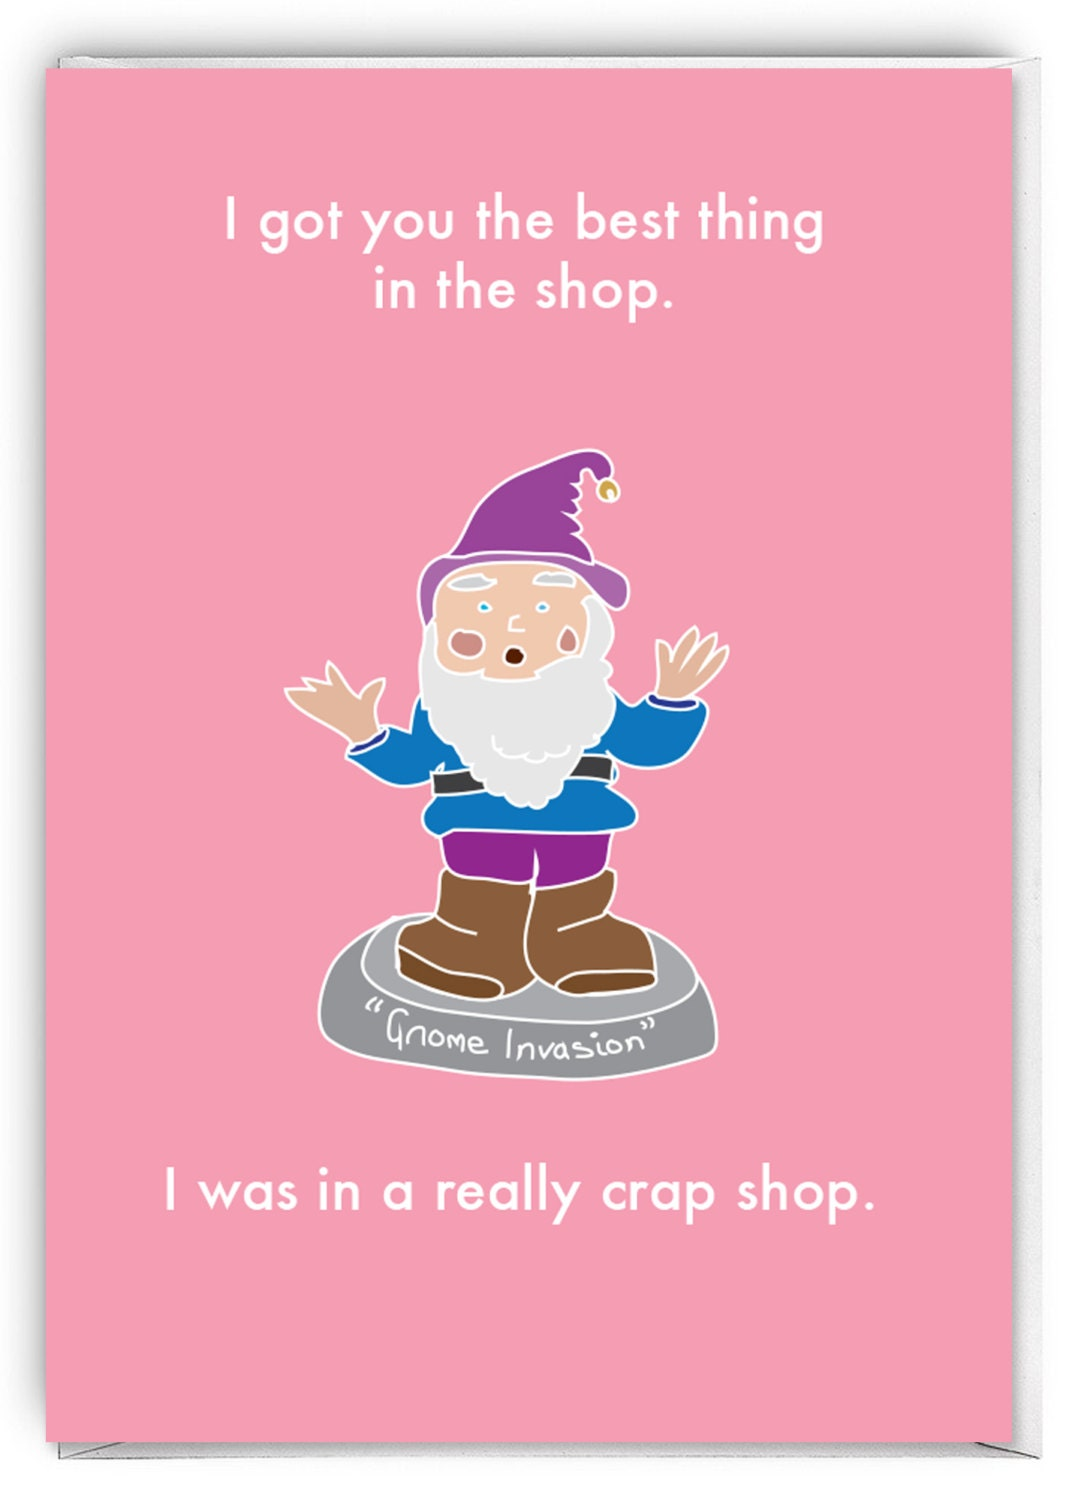 Funny greetings card funny birthday card gnome invasion funny greetings card funny birthday card gnome invasion bookmarktalkfo Image collections